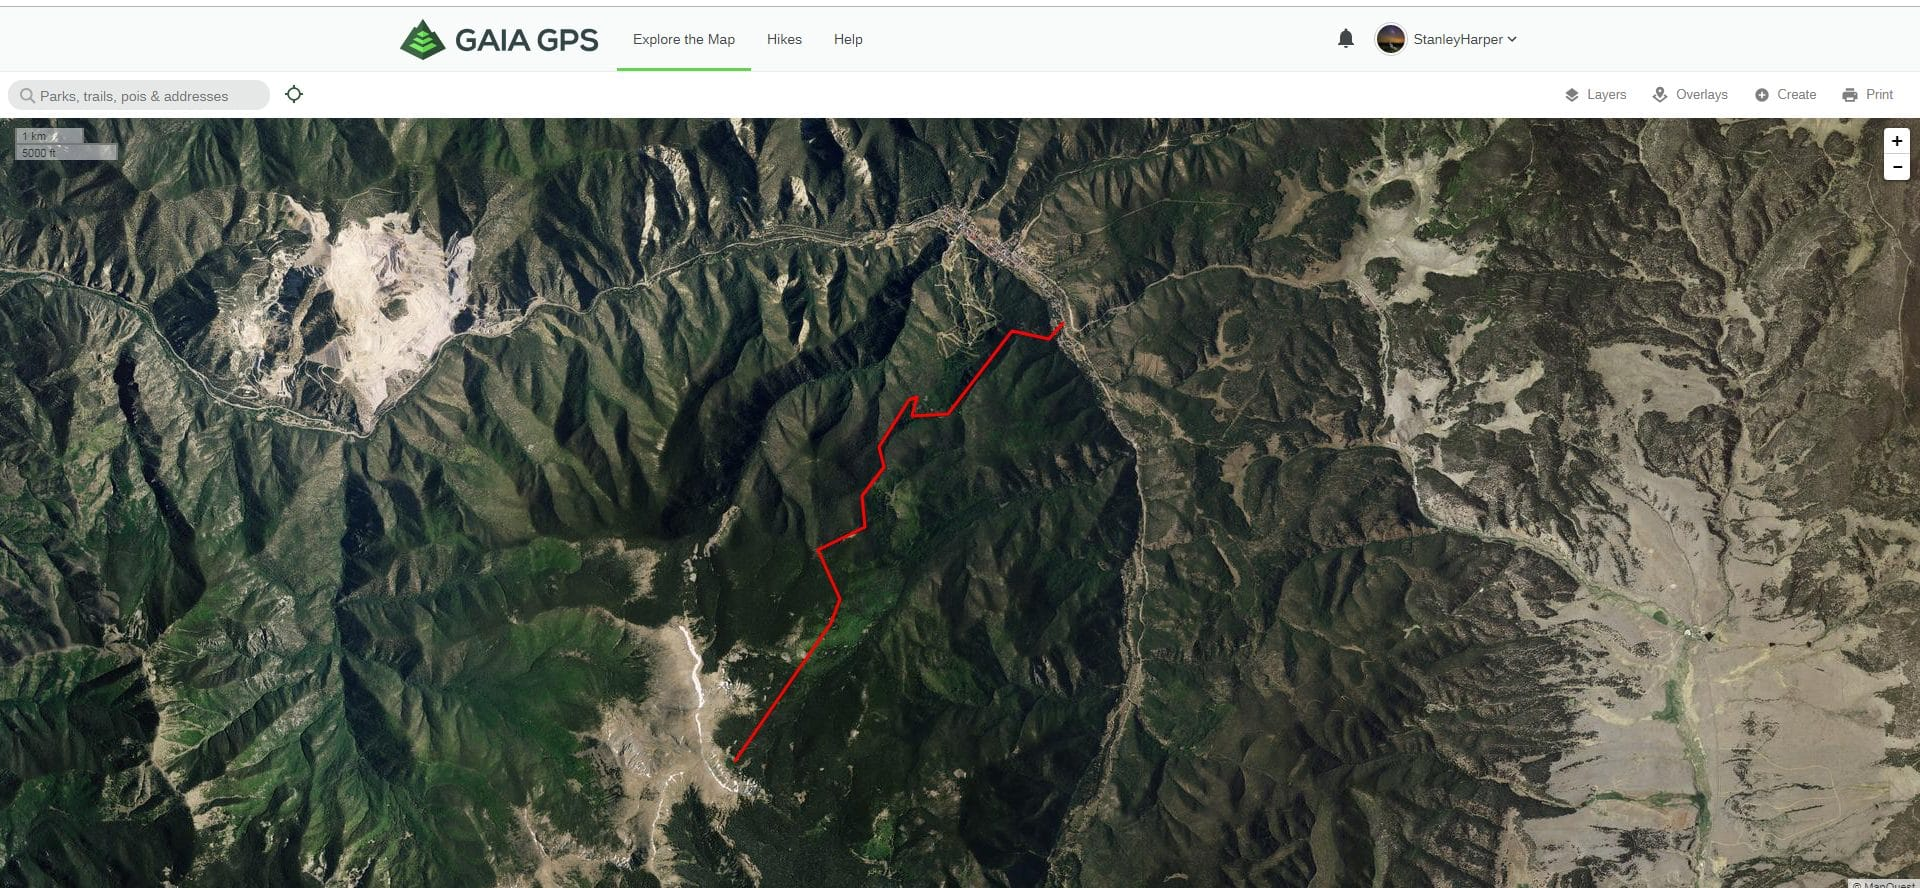 A preplanned route displayed on the GAIA GPS web interface.